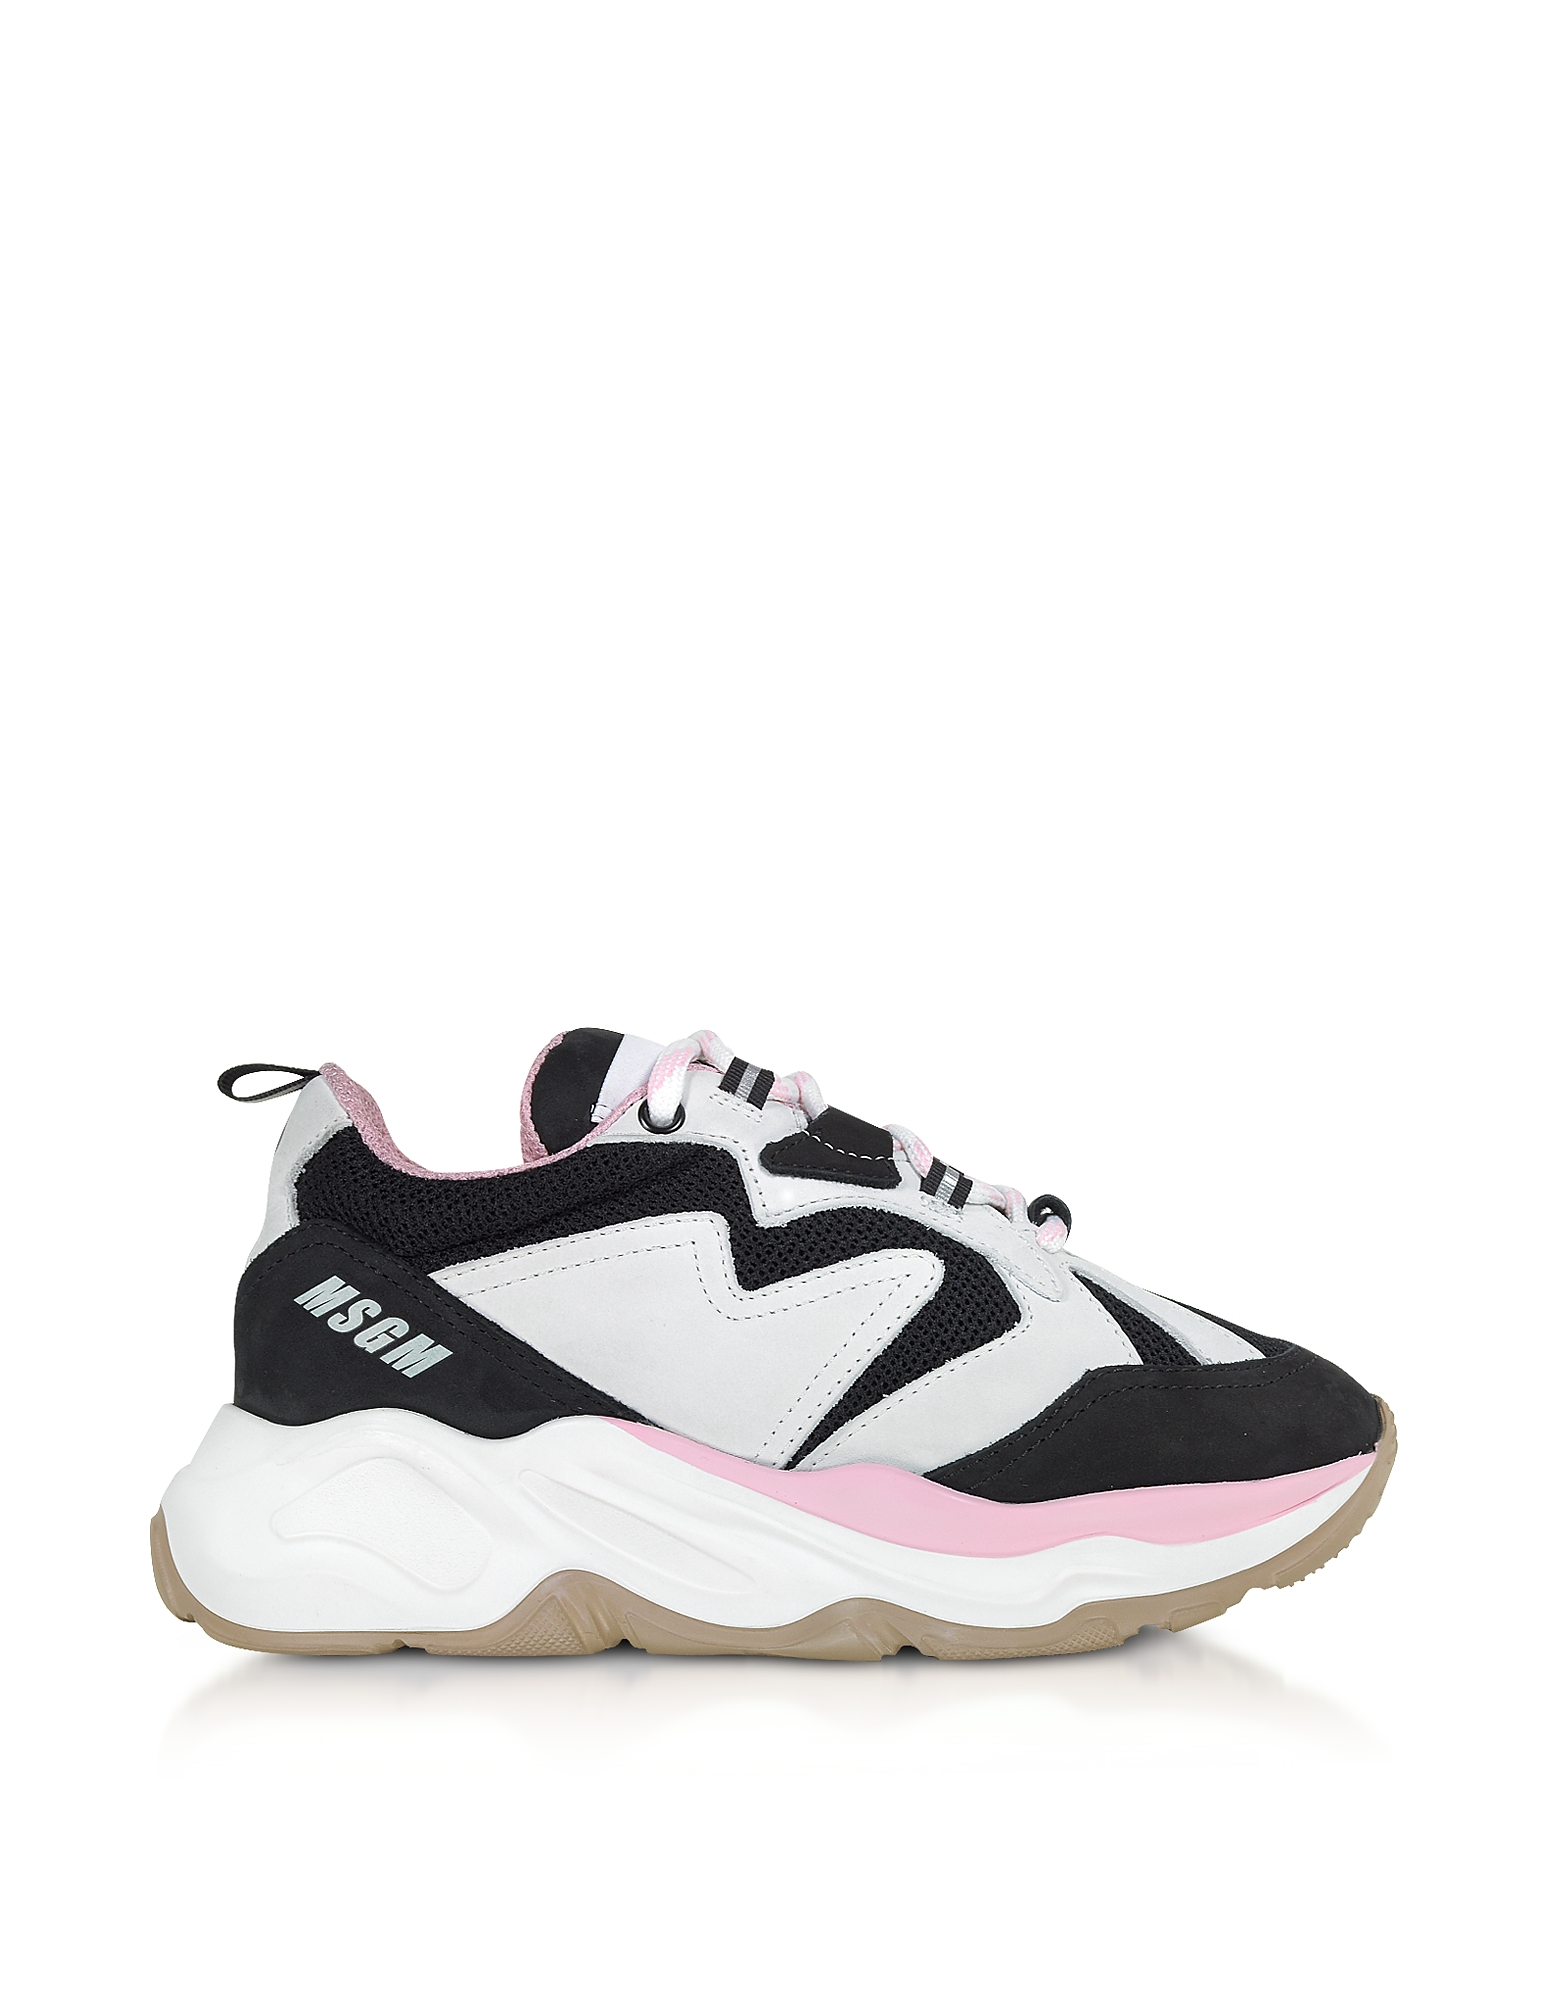 Black & Pink Attack Sneakers, Black / white